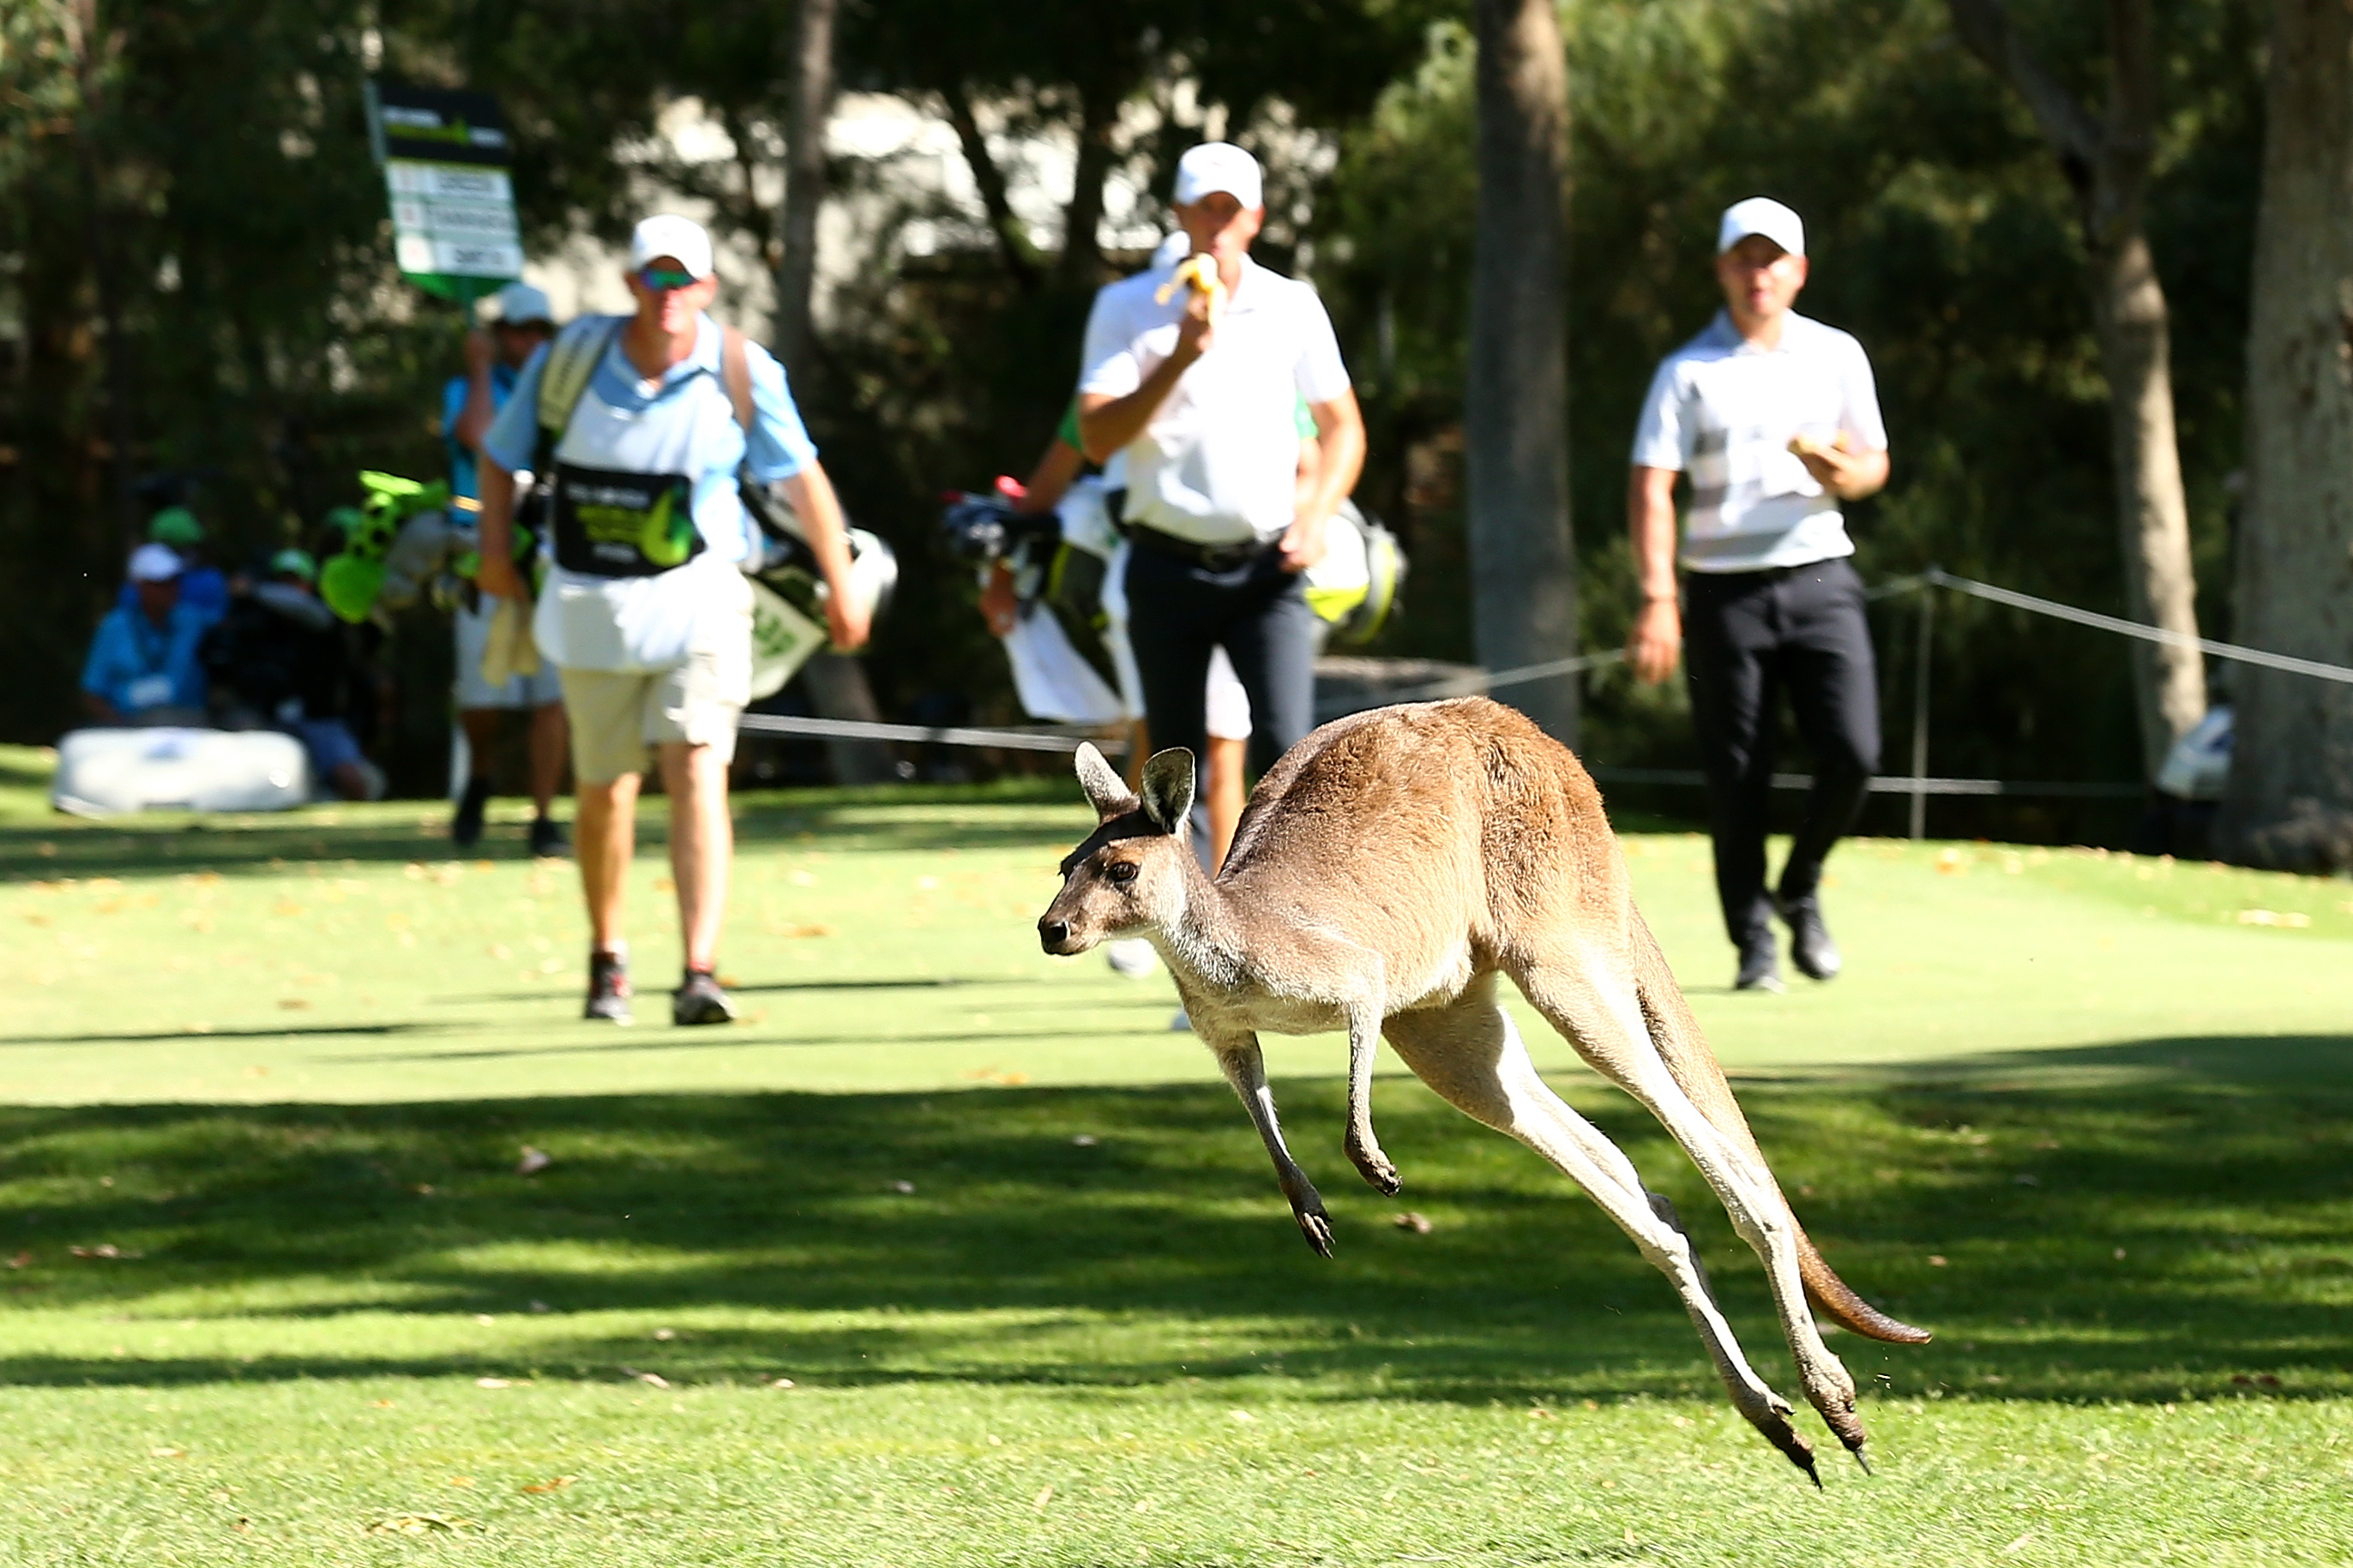 A kangaroo races golfers down the fairway at the World Super 6 in Perth.